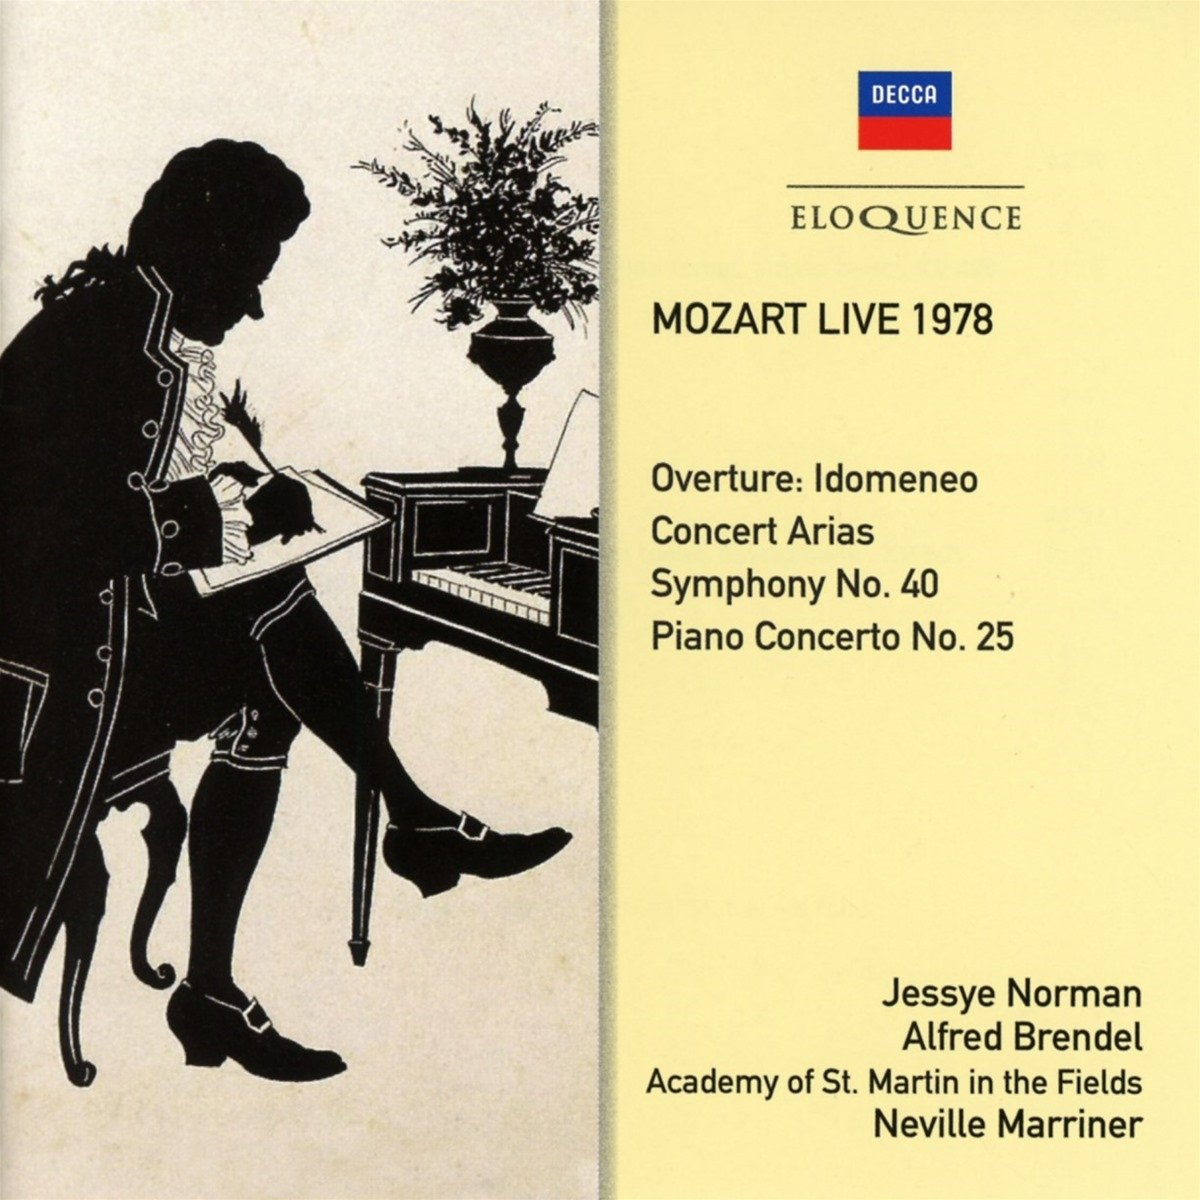 Mozart Live 1978 by Eloquence Australia